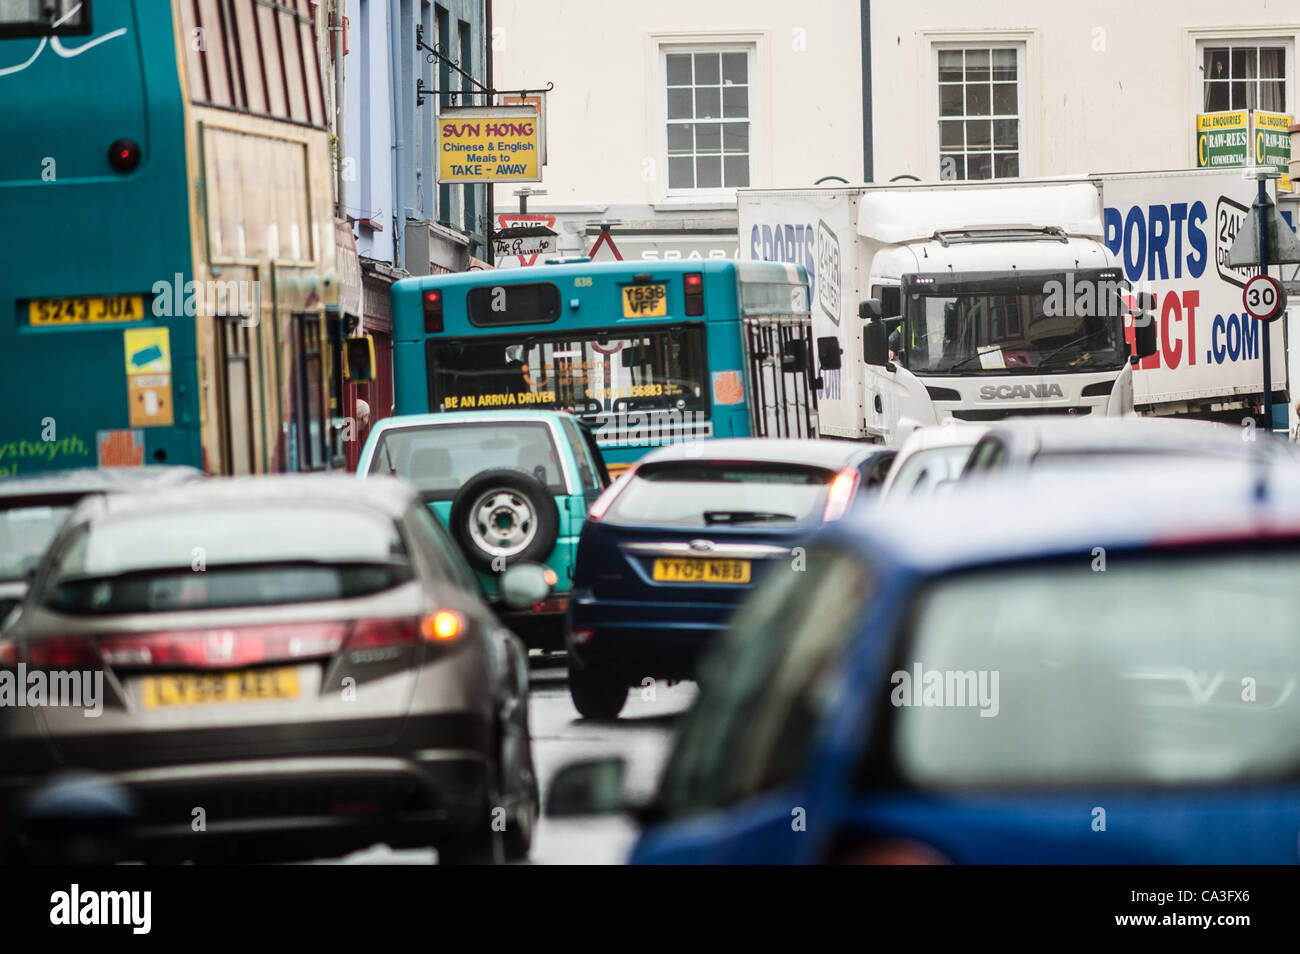 Congestion on the streets of Aberystwyth, Wales UK on the last days of a 'free for all' in the town that - Stock Image